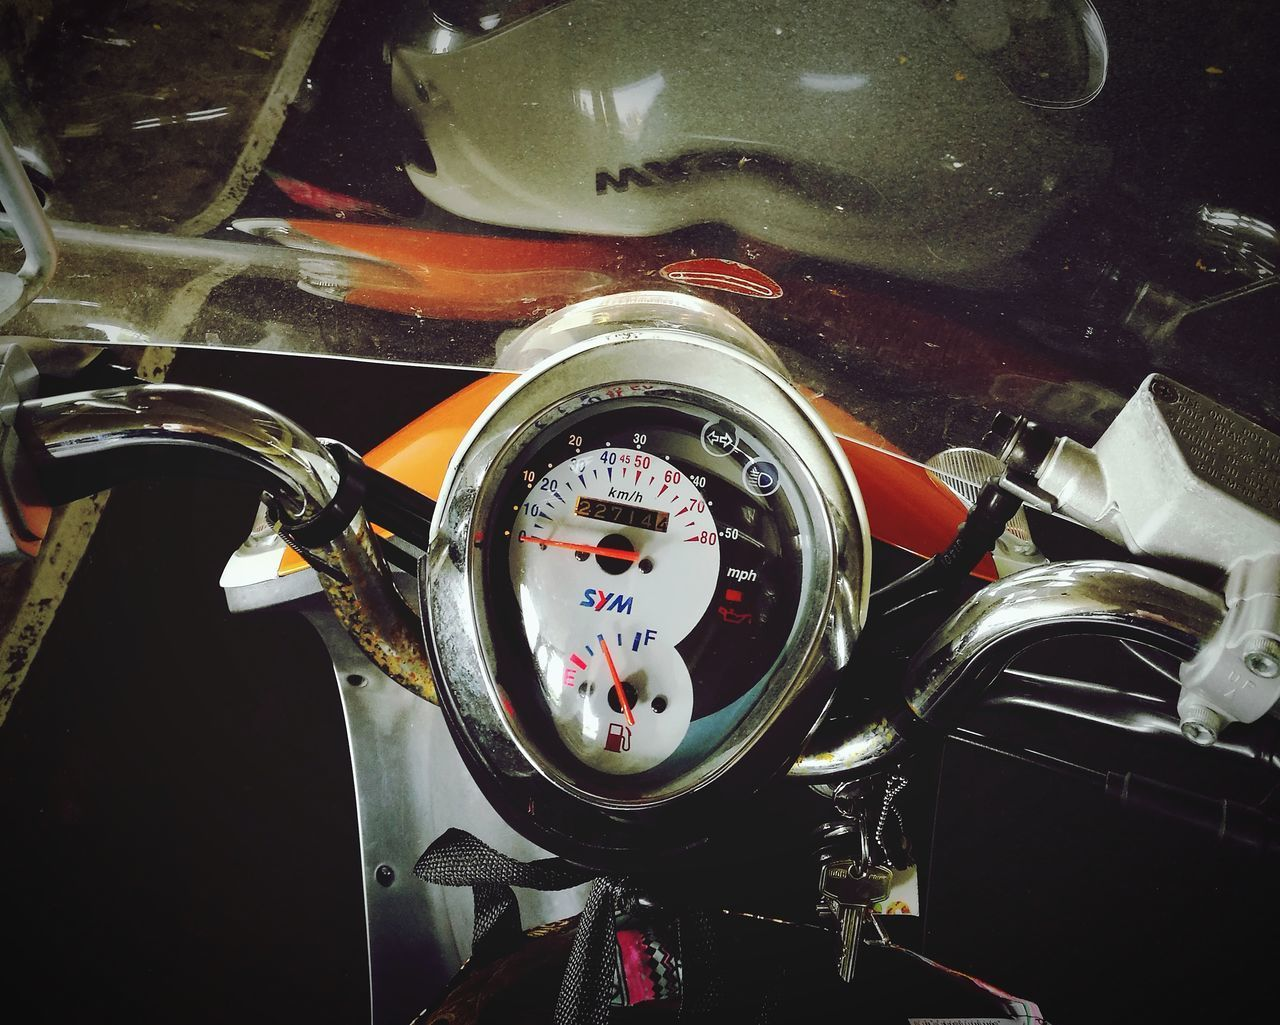 close-up, land vehicle, speedometer, gauge, indoors, no people, technology, pressure gauge, day